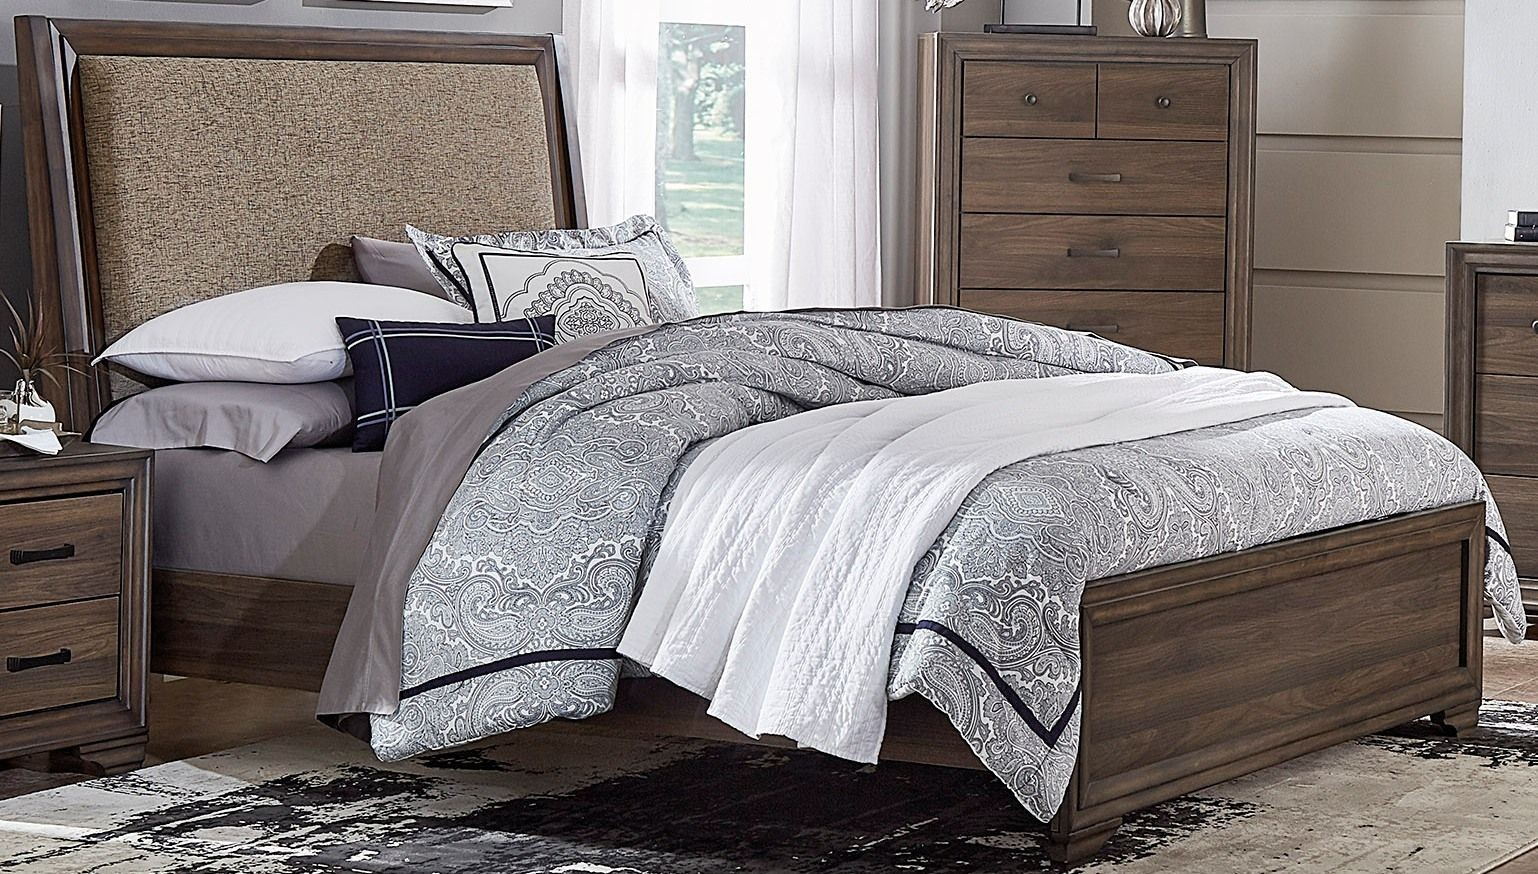 Clarksdale Walnut King Upholstered Panel Bed From Liberty